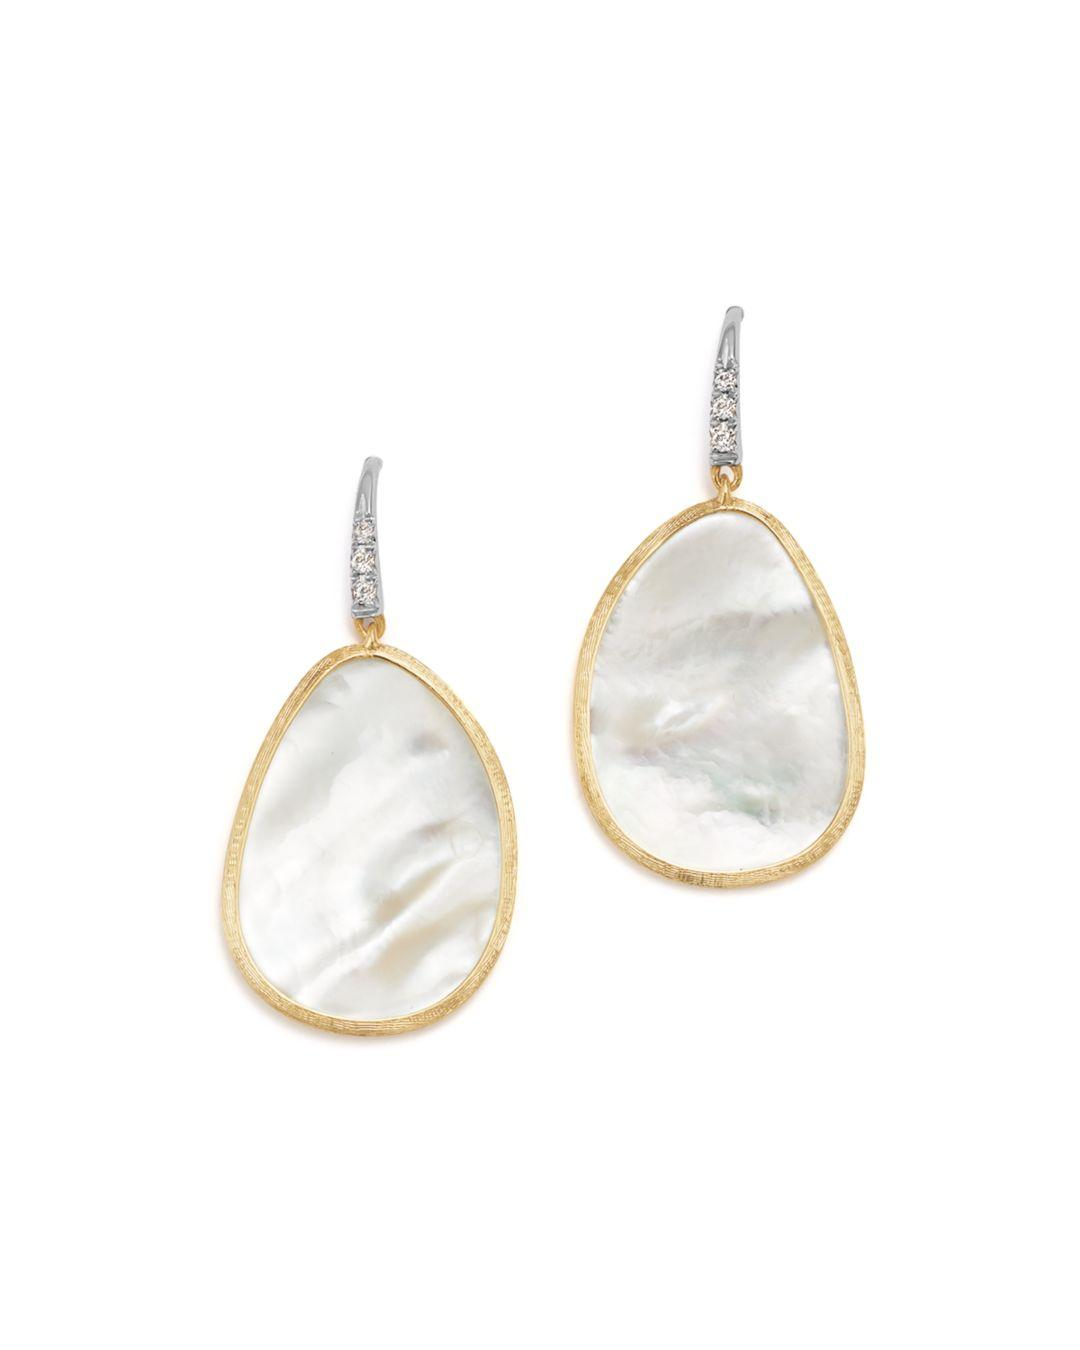 7e85f5f58dbcf7 Marco Bicego 18k White & Yellow Gold Lunaria Mother - Of - Pearl ...